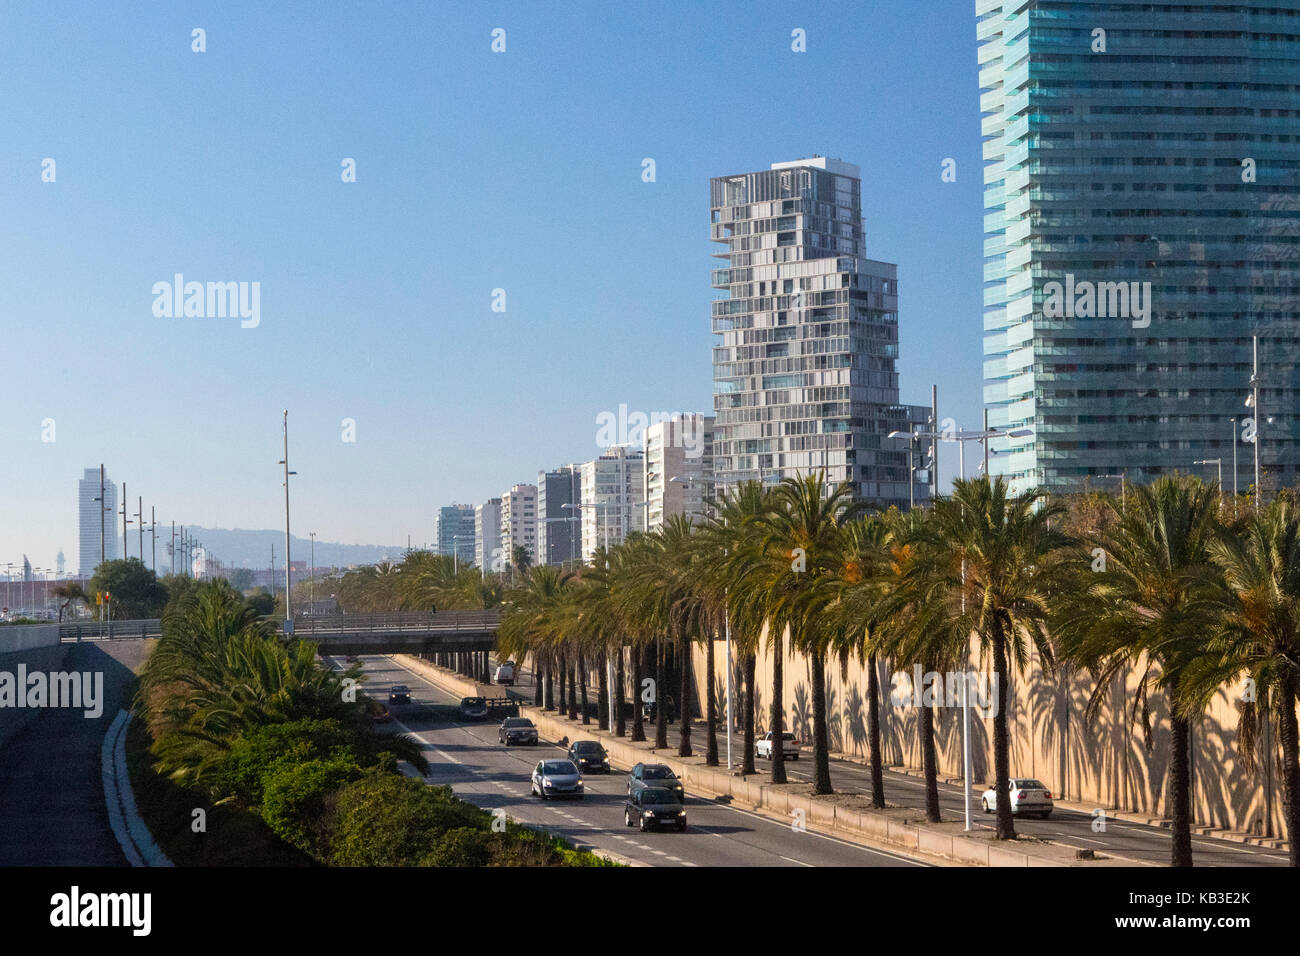 Spain, region Catalonia, Barcelona, district Diagonally Mar, freeway - Stock Image